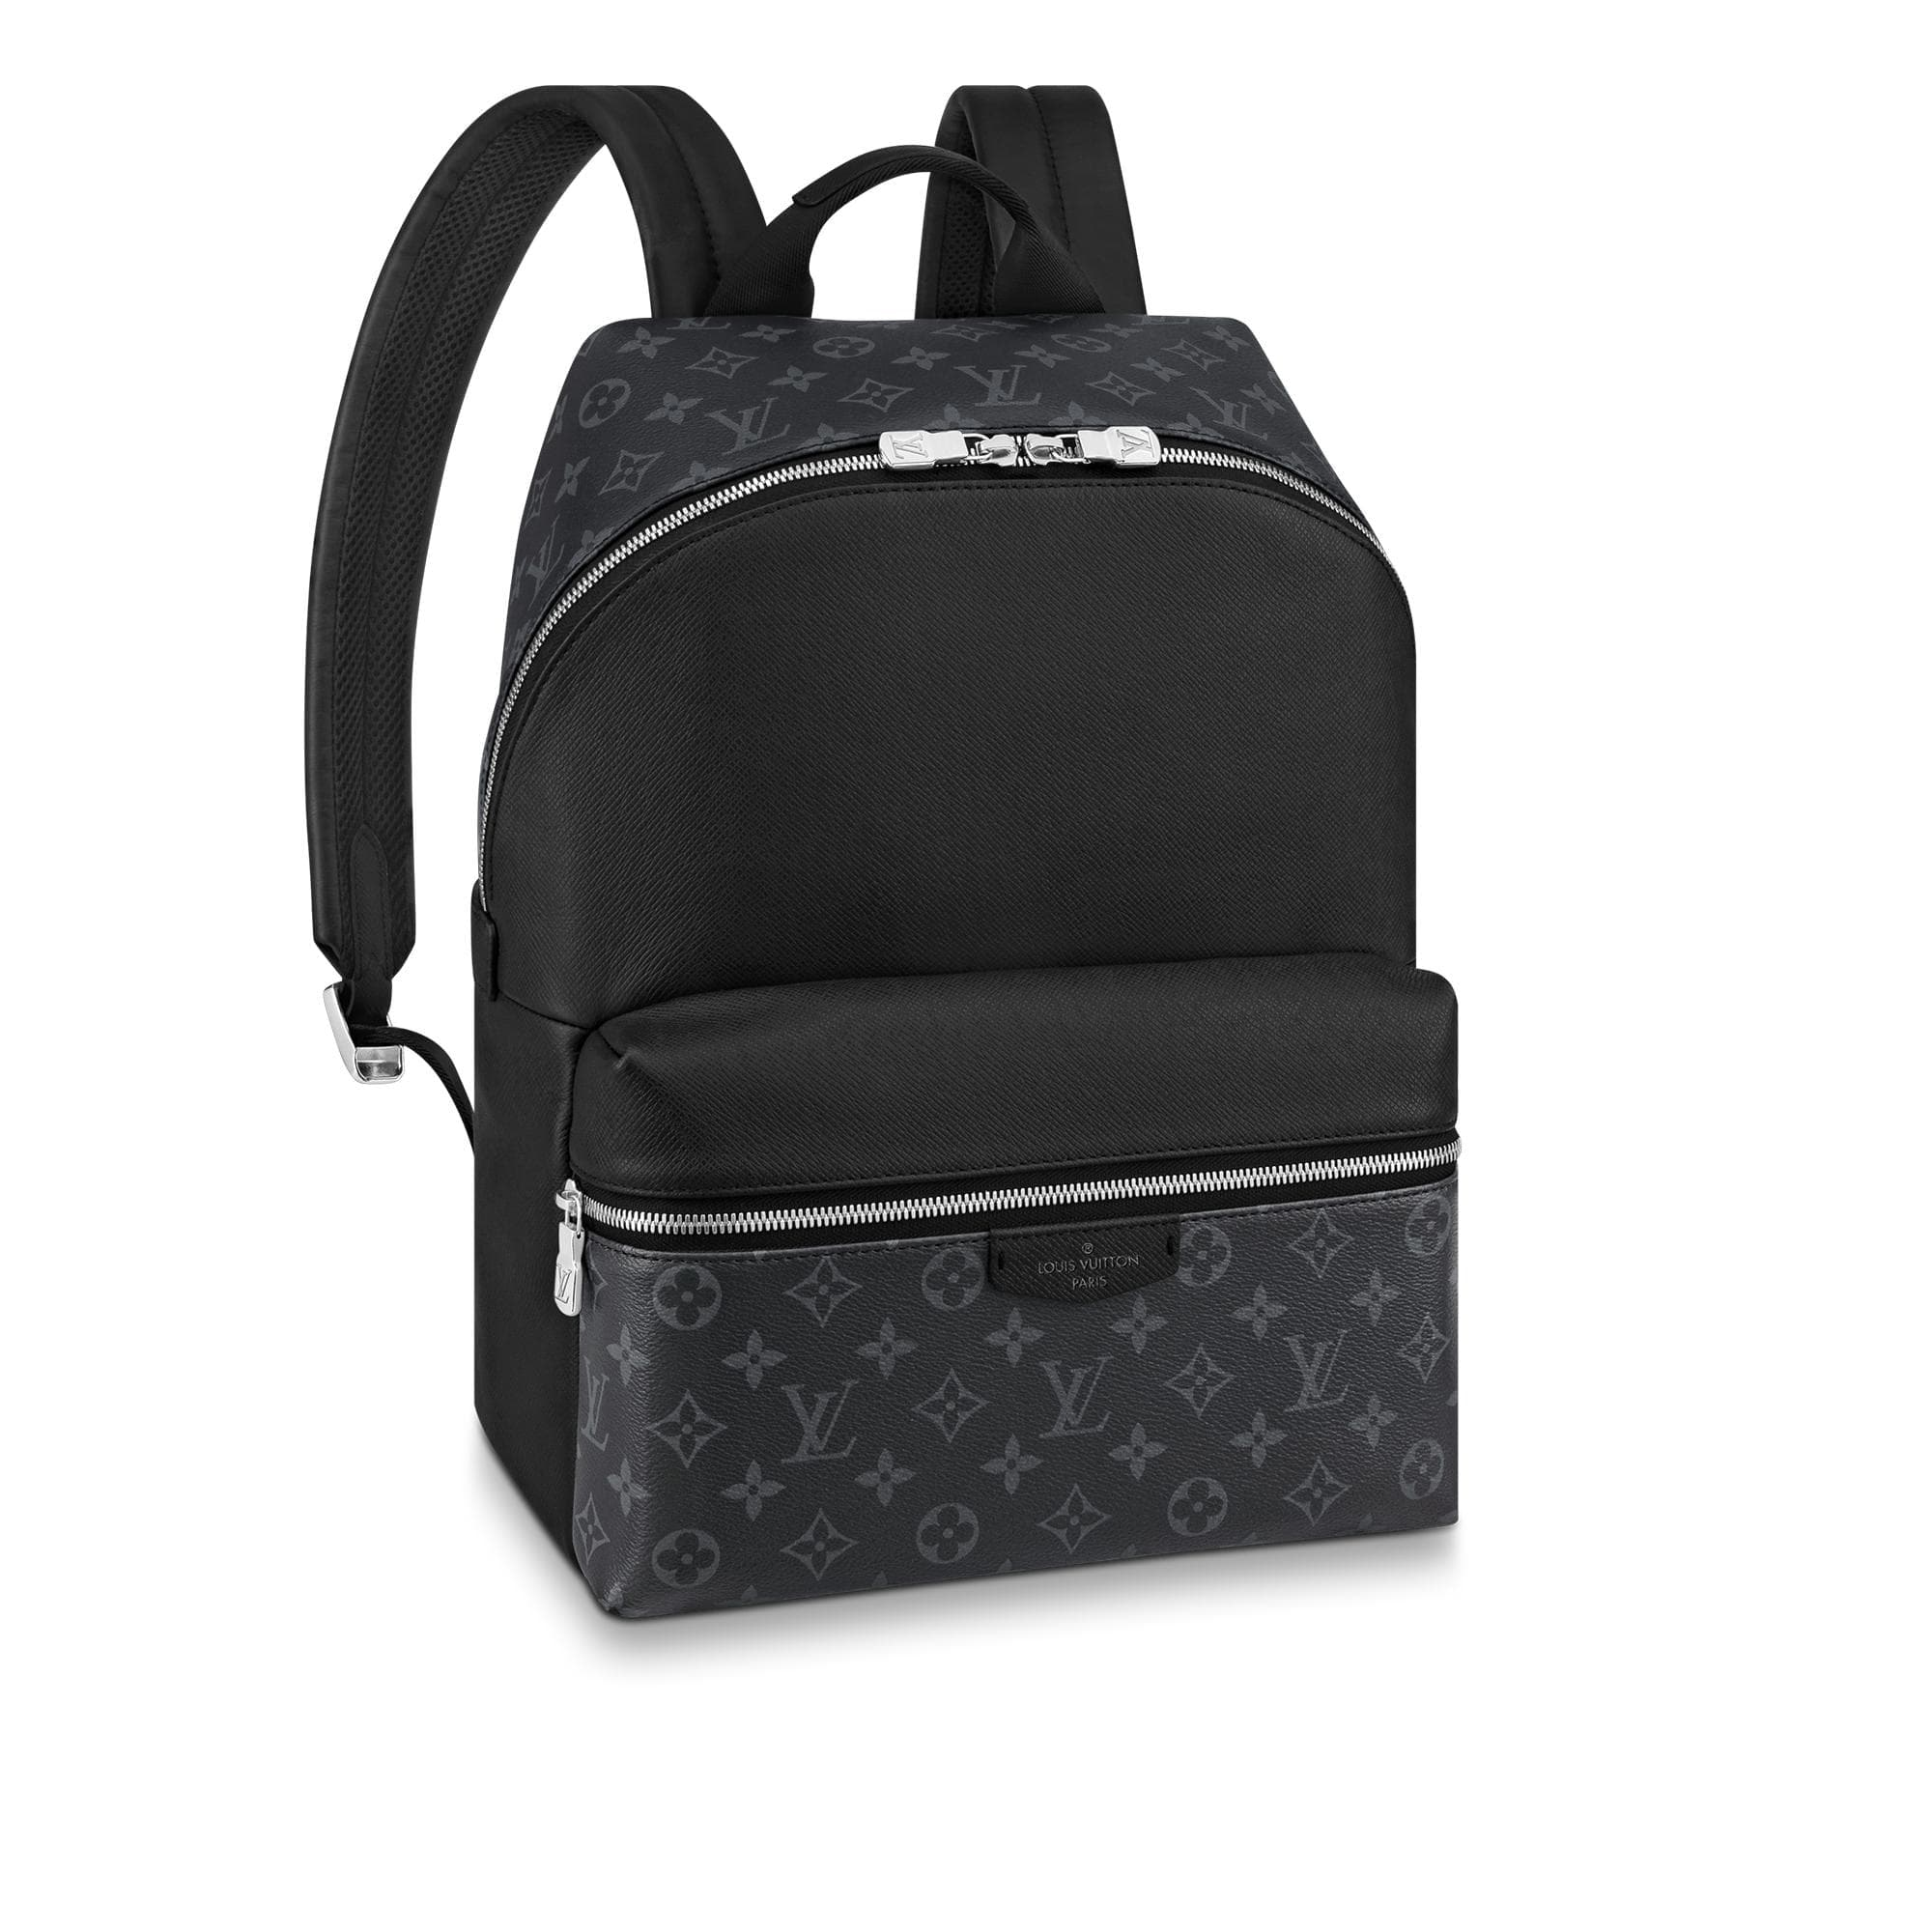 Louis Vuitton Discovery Backpack Monogram Eclipse Taiga PM Black